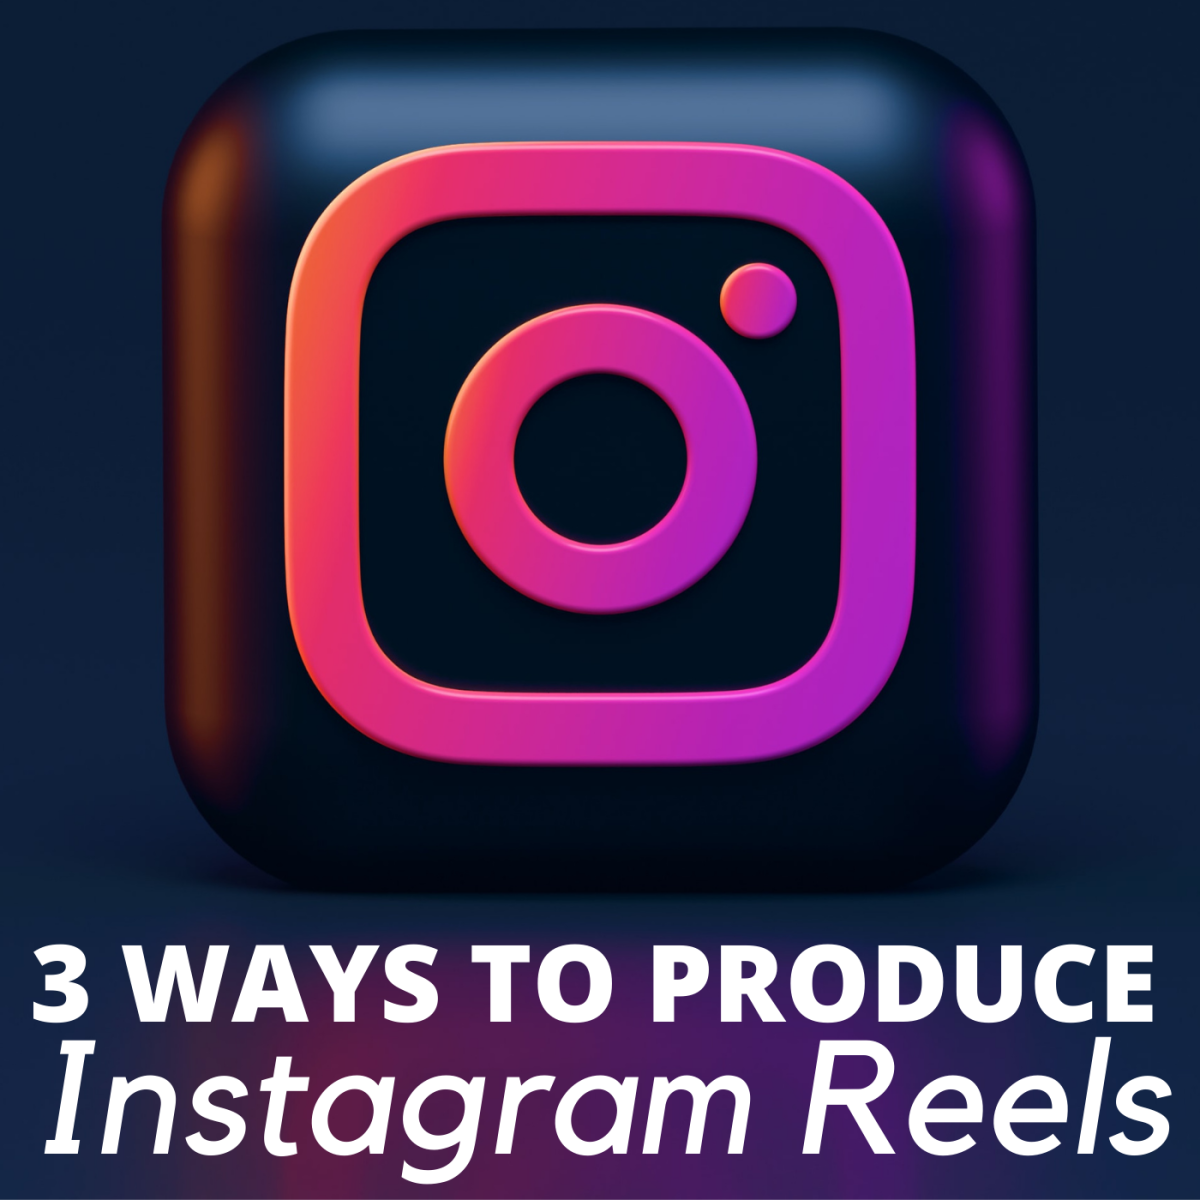 Producing reels on Instagram is a great way to expand your reach.